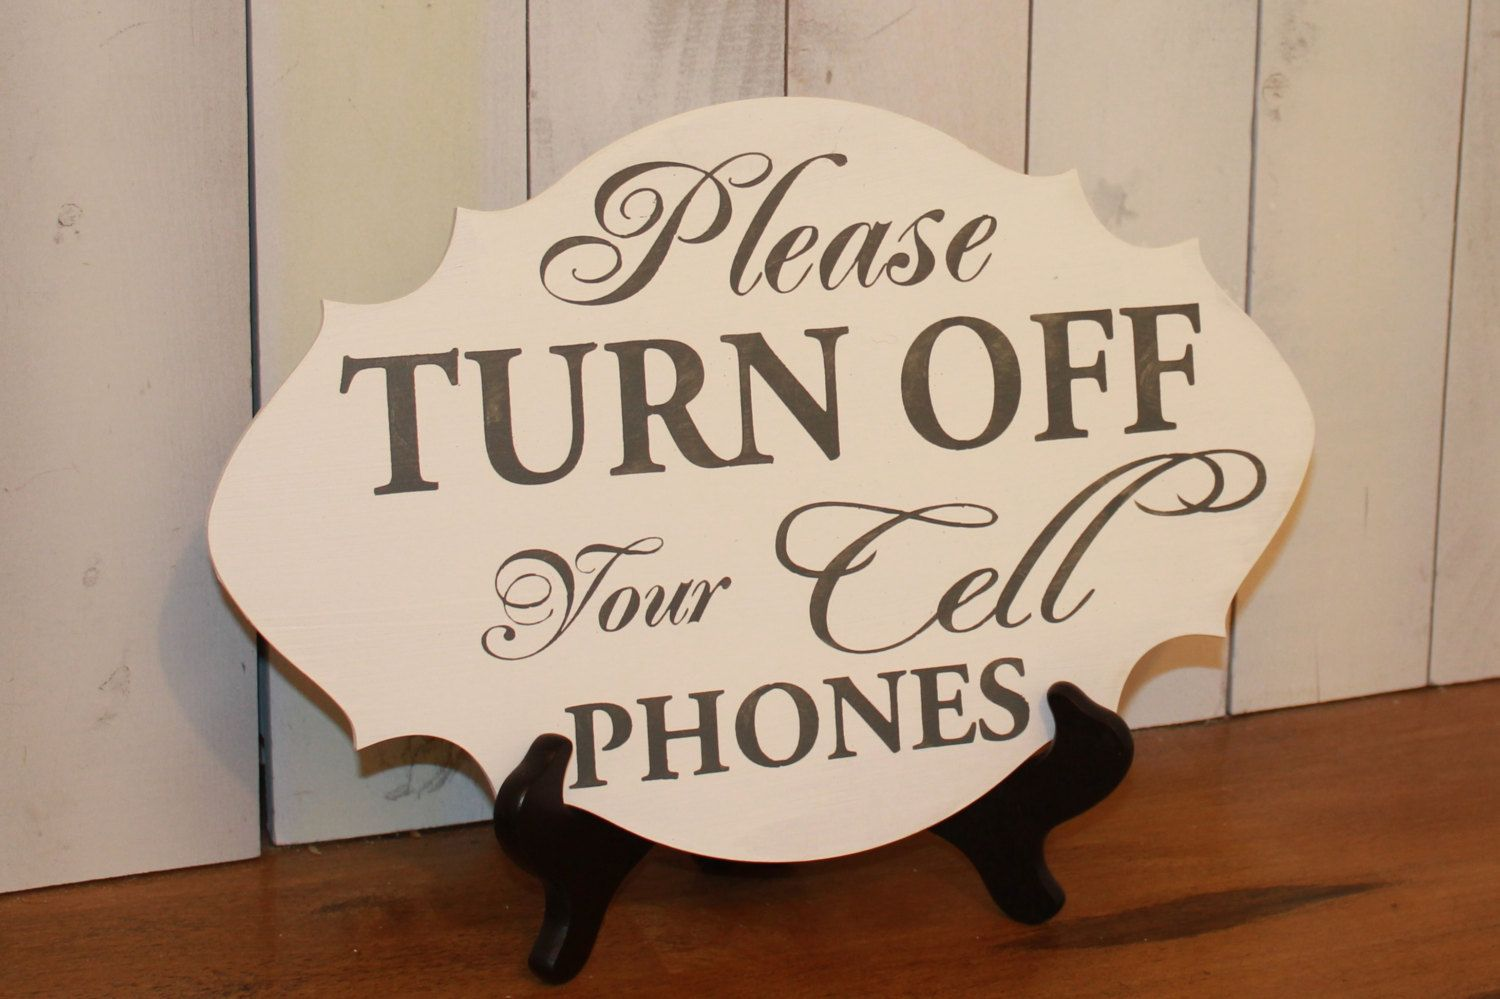 Please Turn Off Your Cell Phones Ceremony Sign Event Sign Cell Phone Sign Turn Off Phone Phone Sign Leather Cell Phone Cases Unplugged Wedding Sign Event Sign Turn off cell phones sign